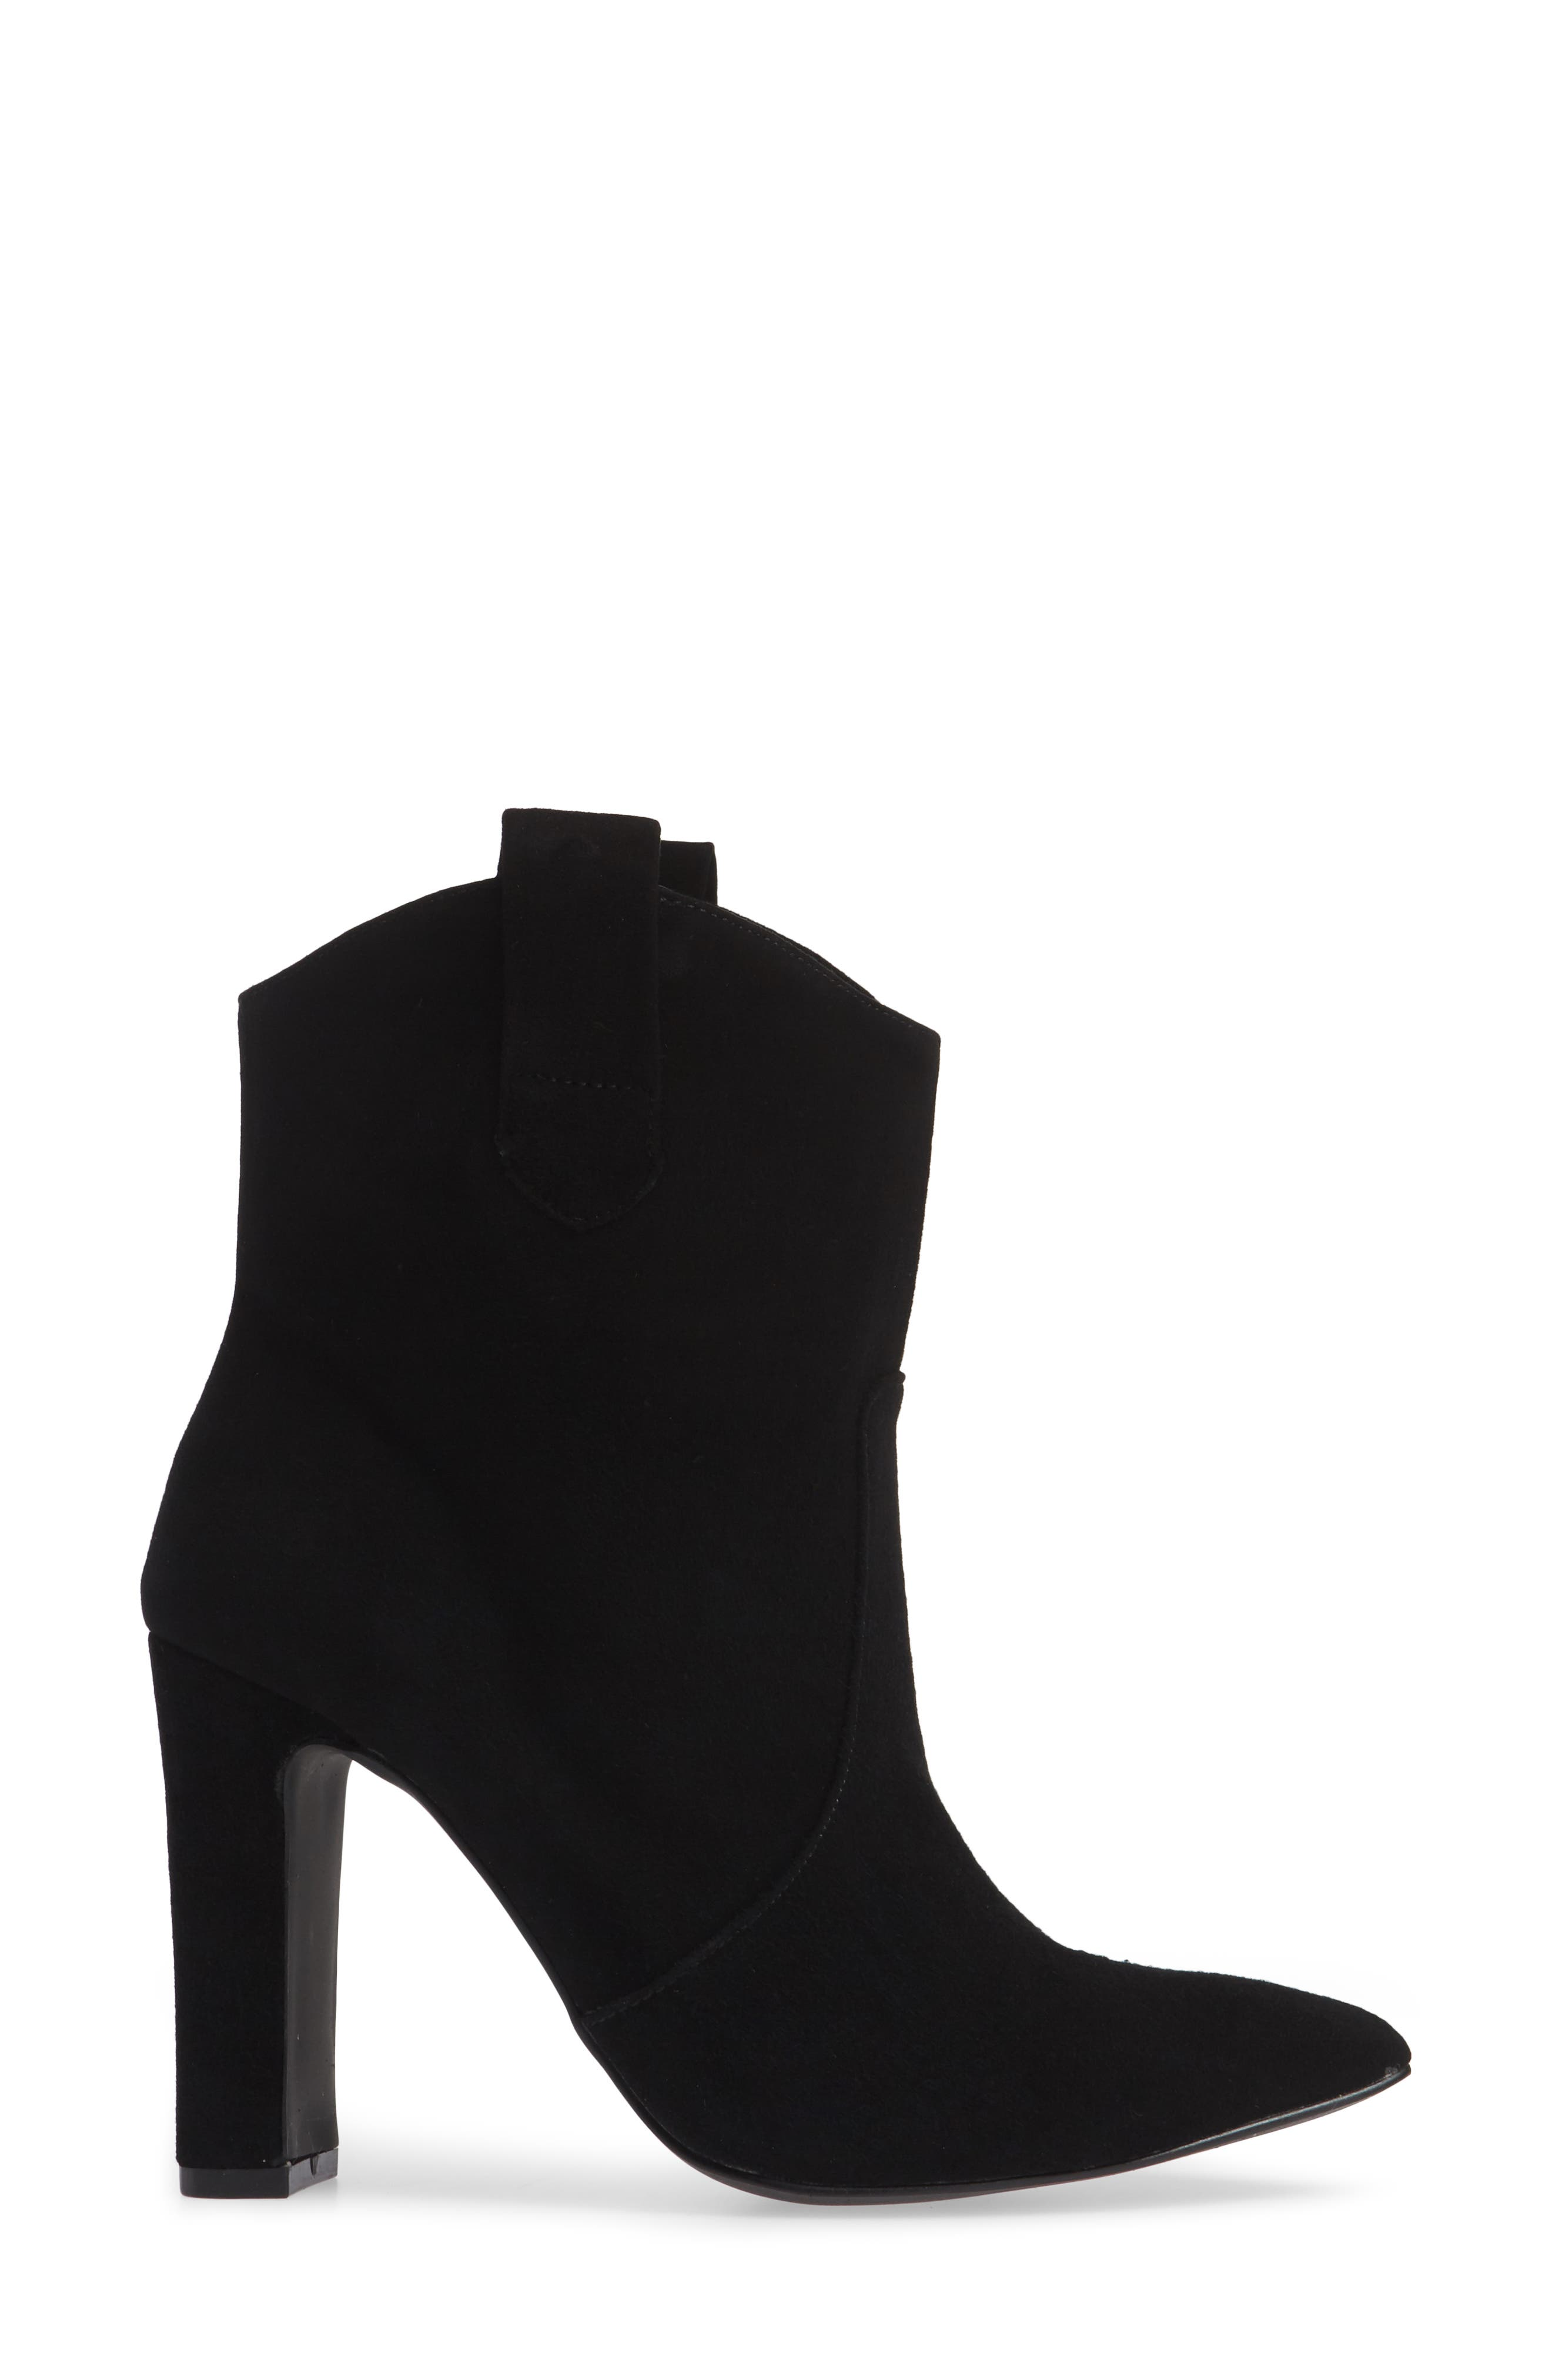 Karly Suede Bootie,                             Alternate thumbnail 3, color,                             BLACK SUEDE